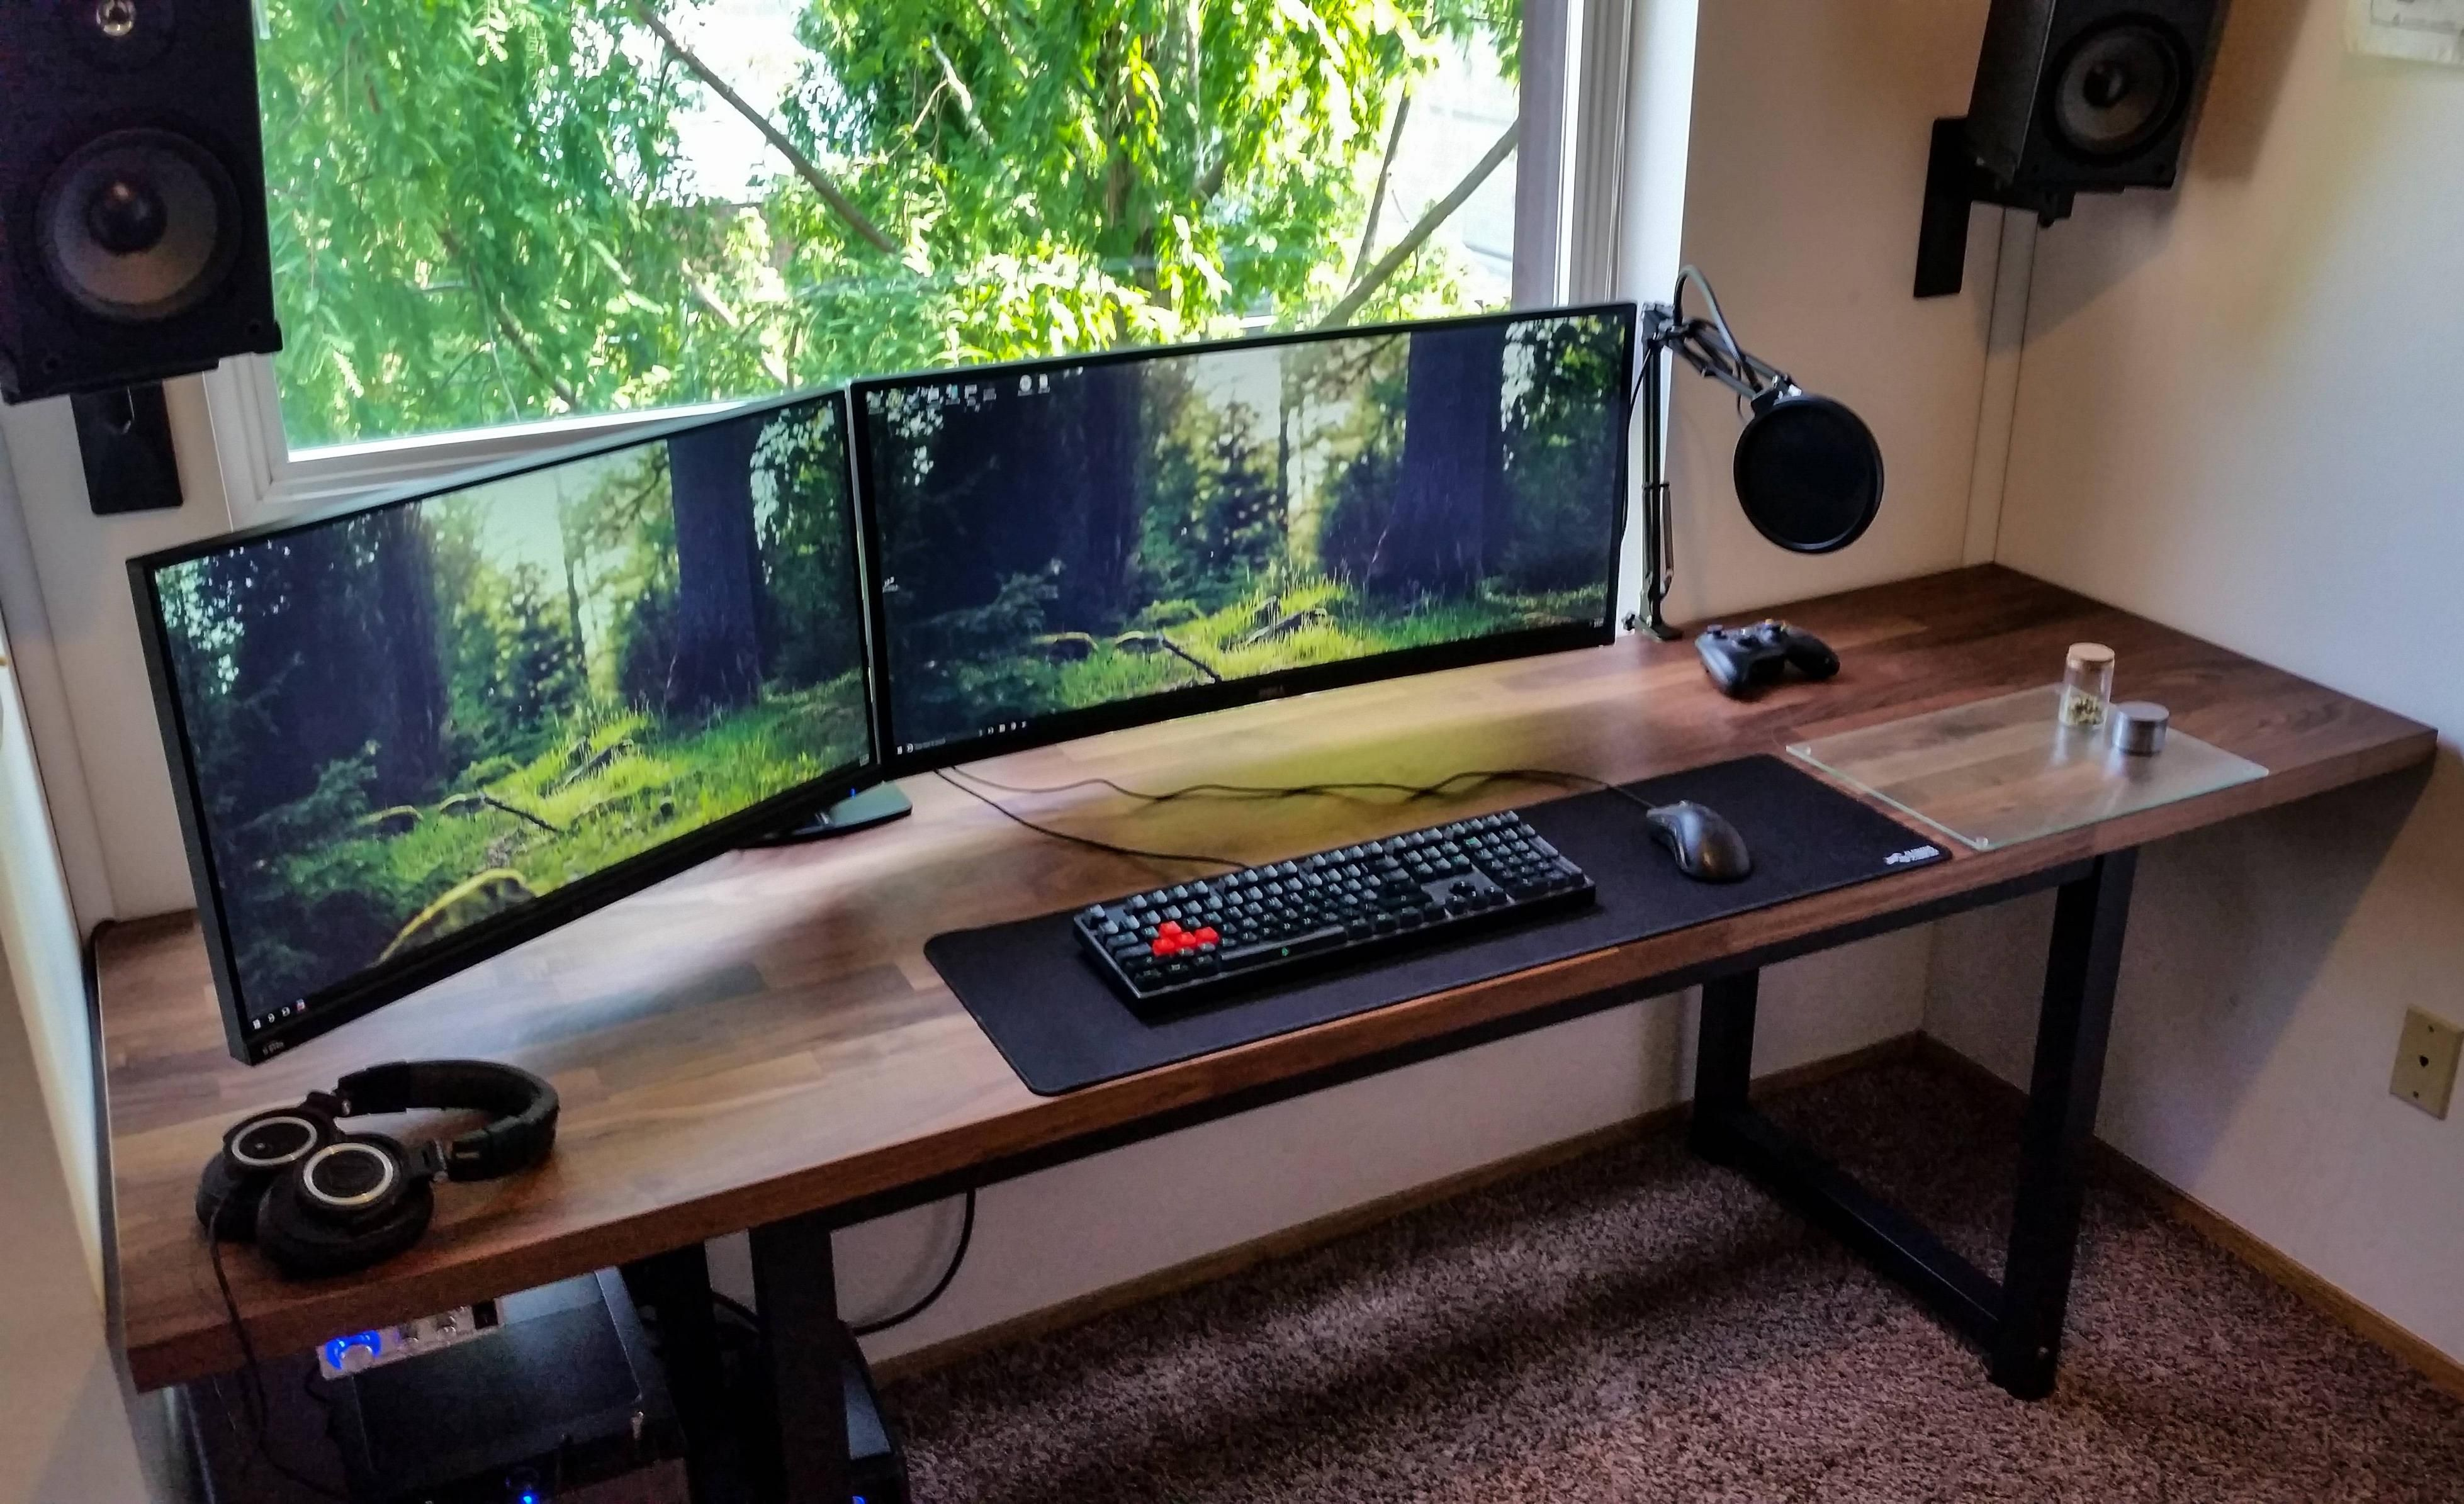 My first plete battlestation 20 years after I started building my